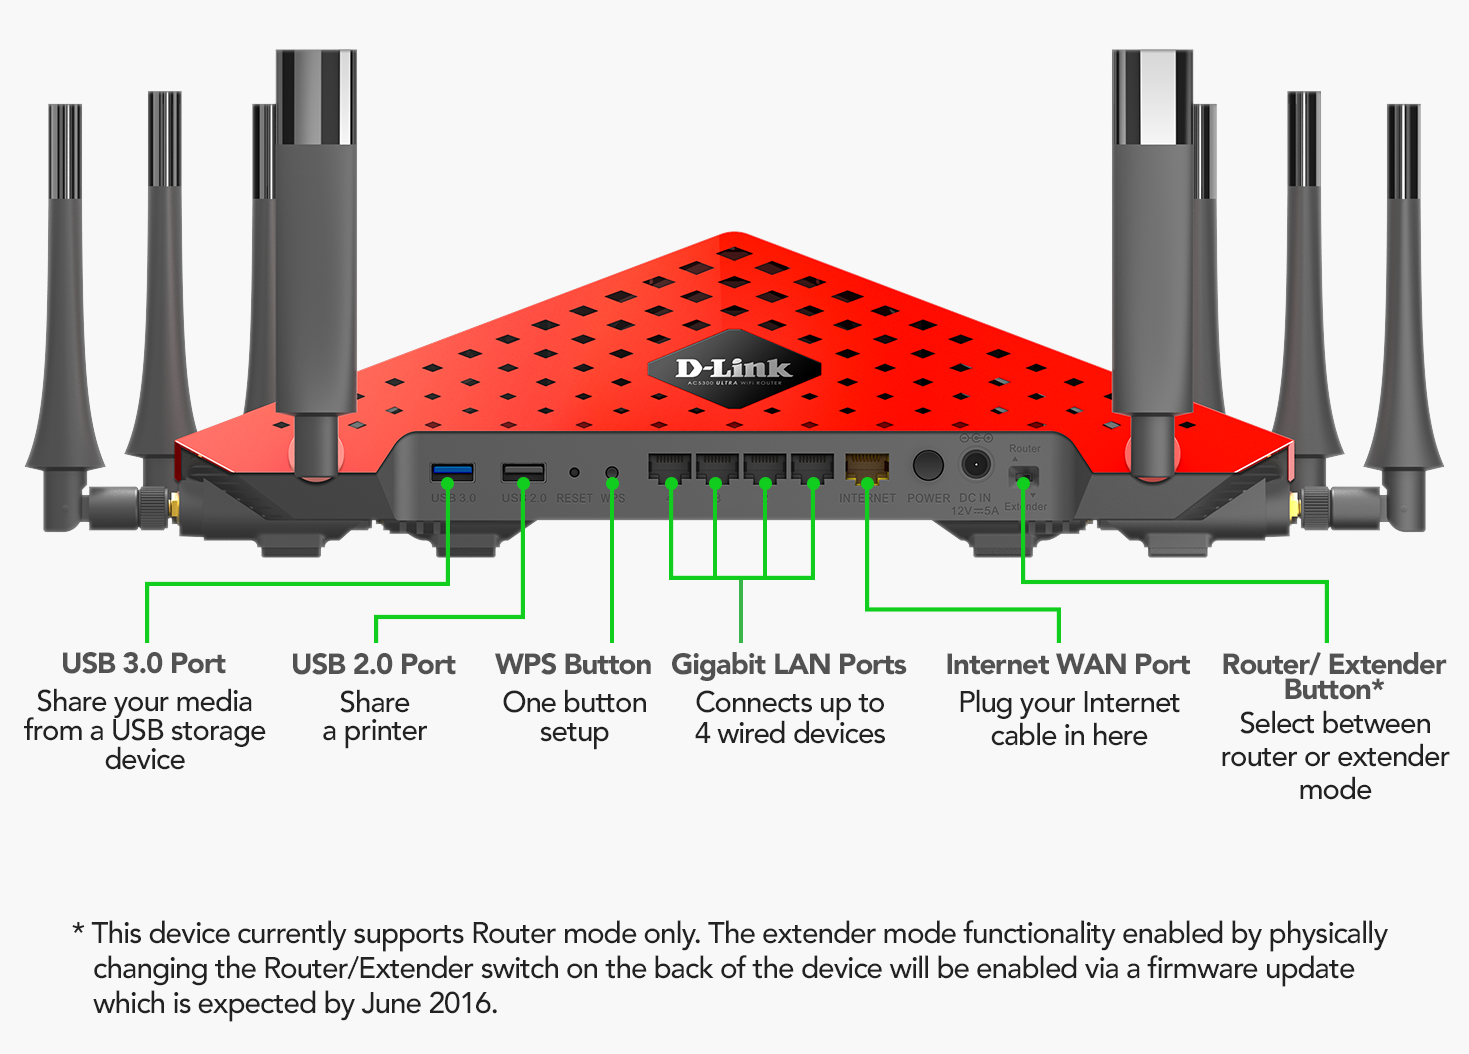 895L_image ac5300 mu mimo ultra wi fi router d'link router wiring diagram at creativeand.co